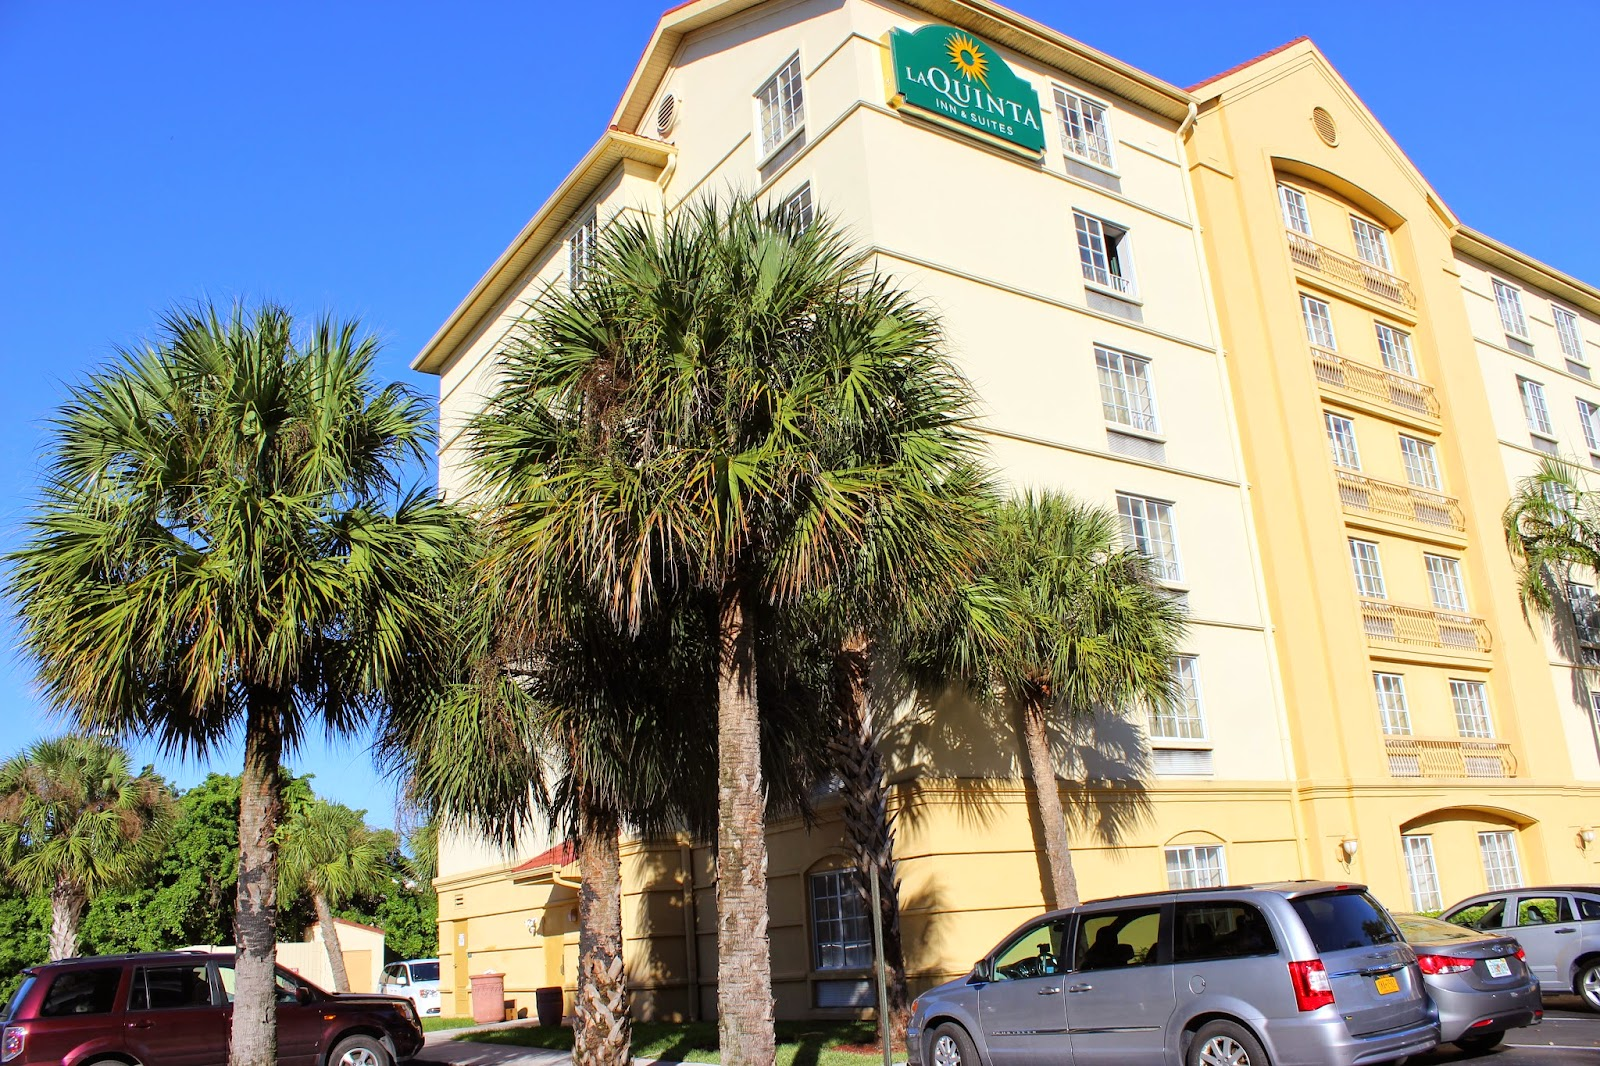 la quinta inn and suites west miami